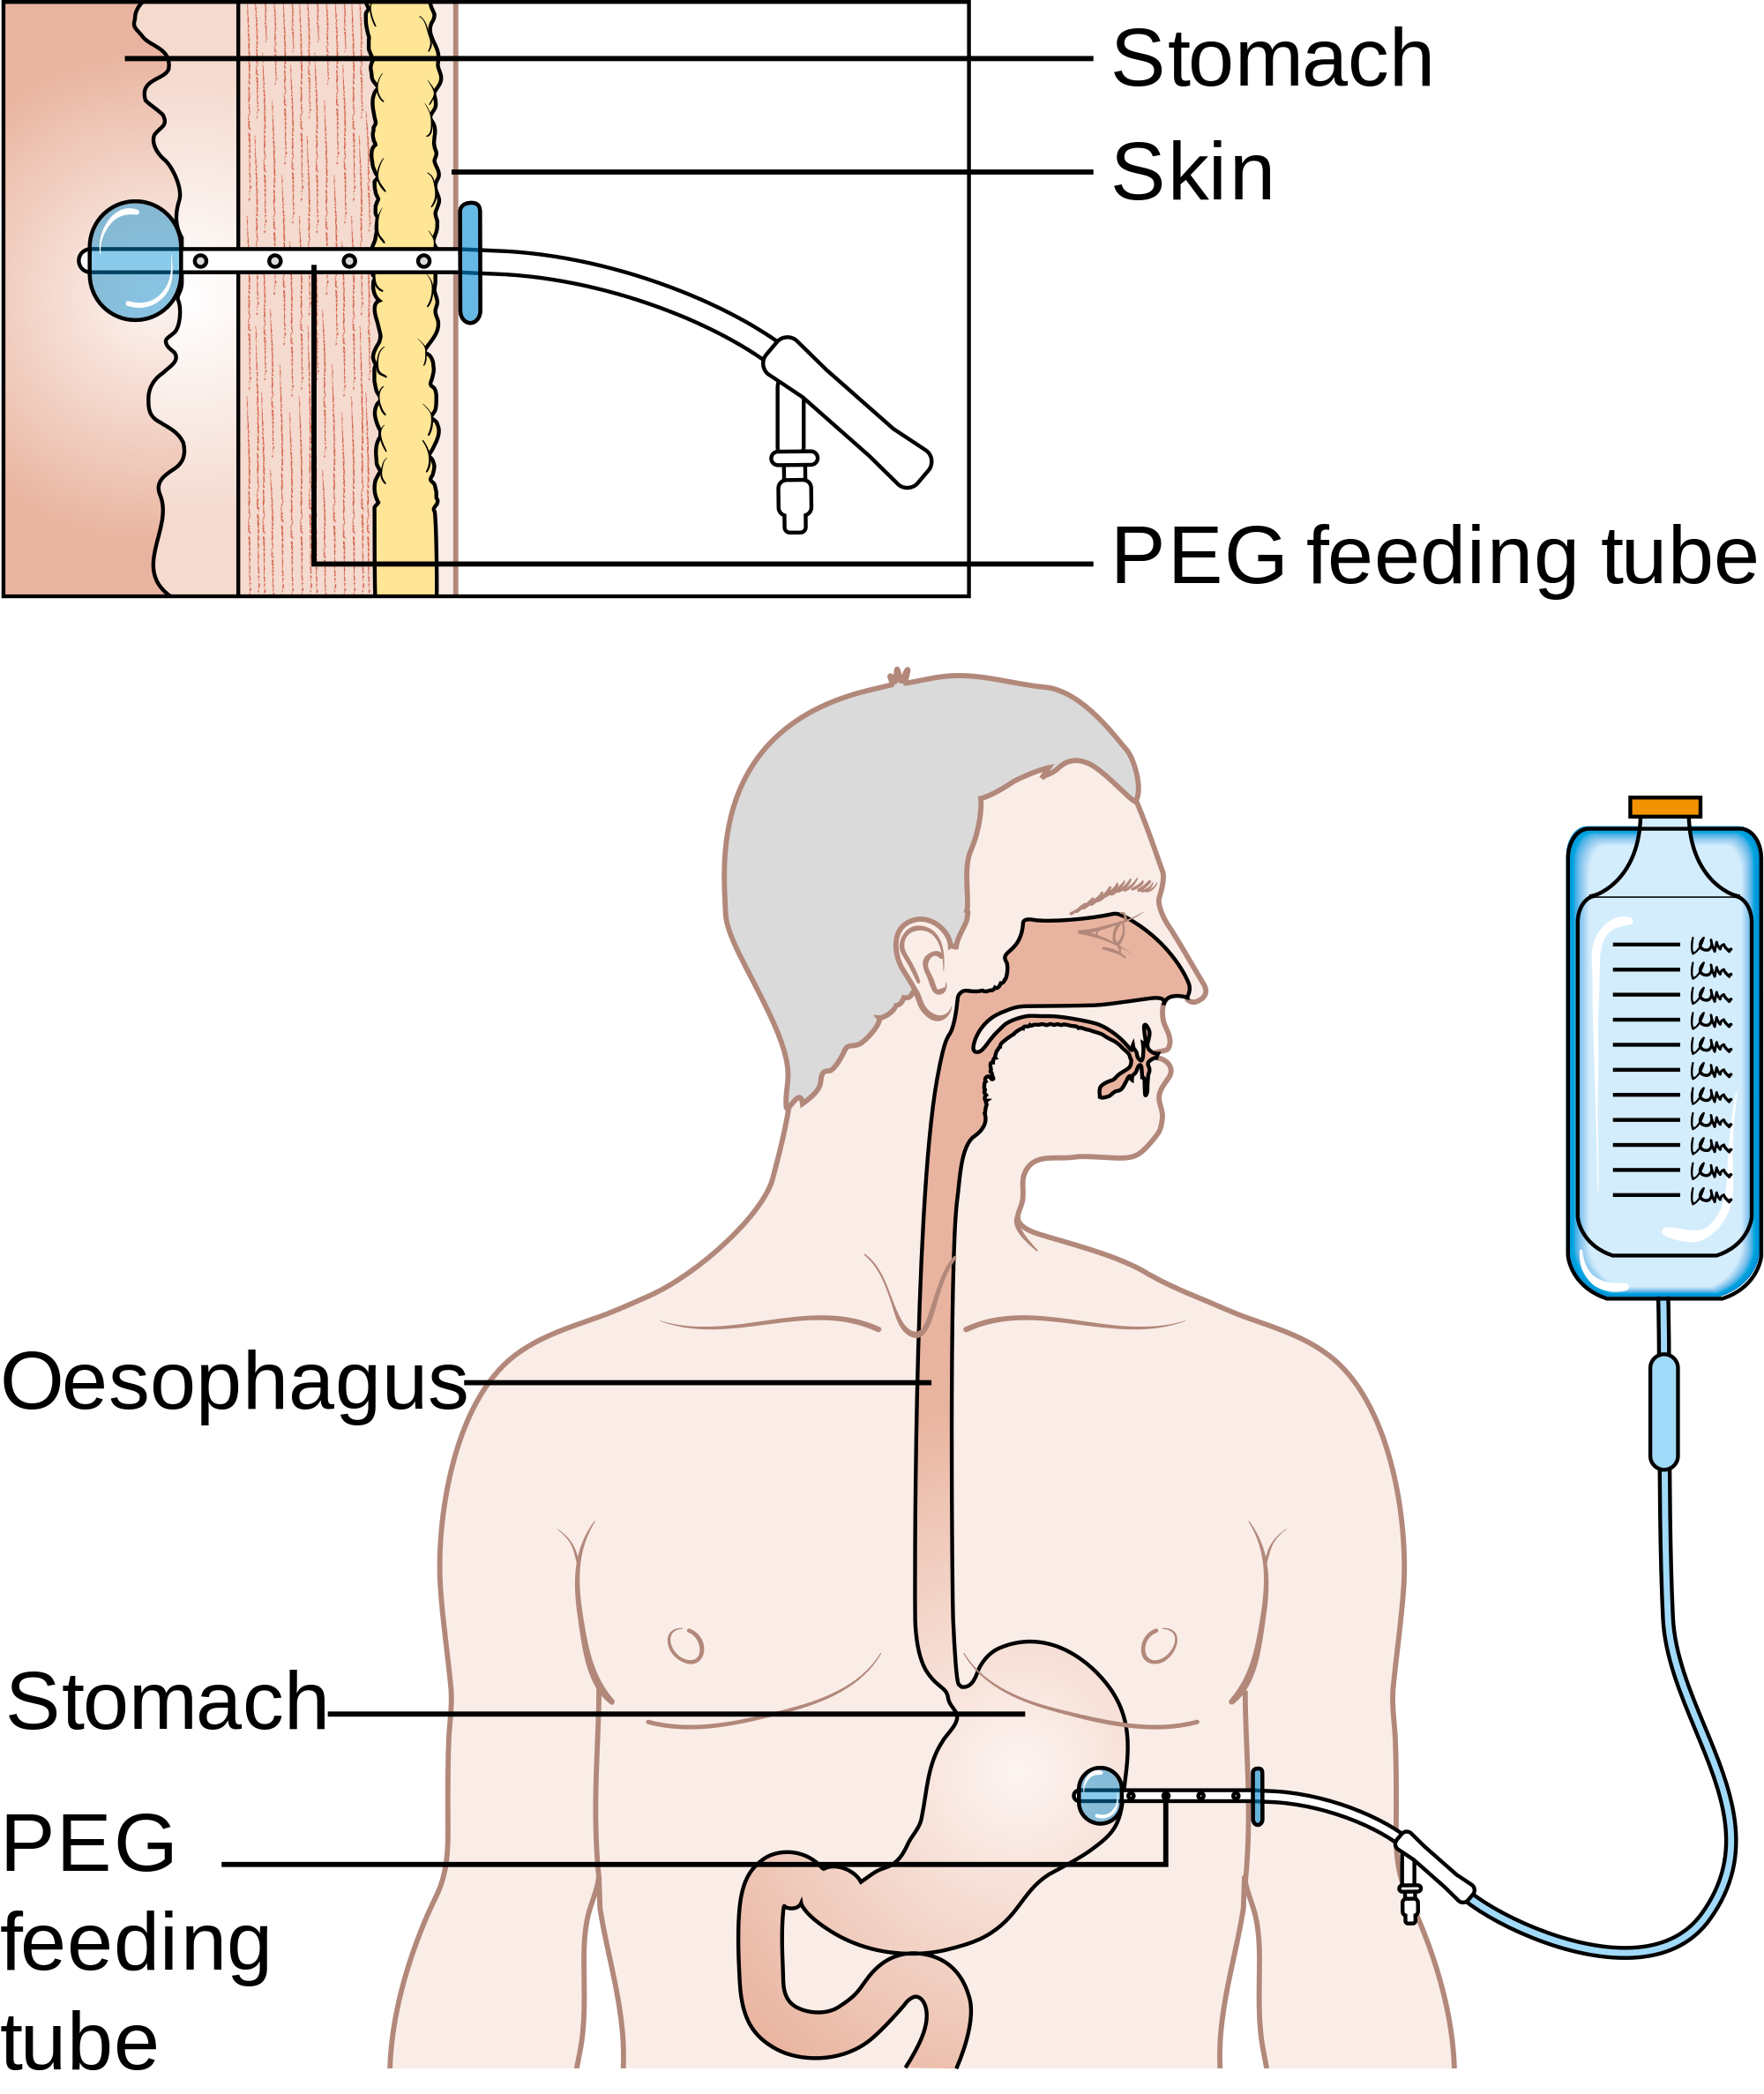 External view of the inserted gastrostomy catheter